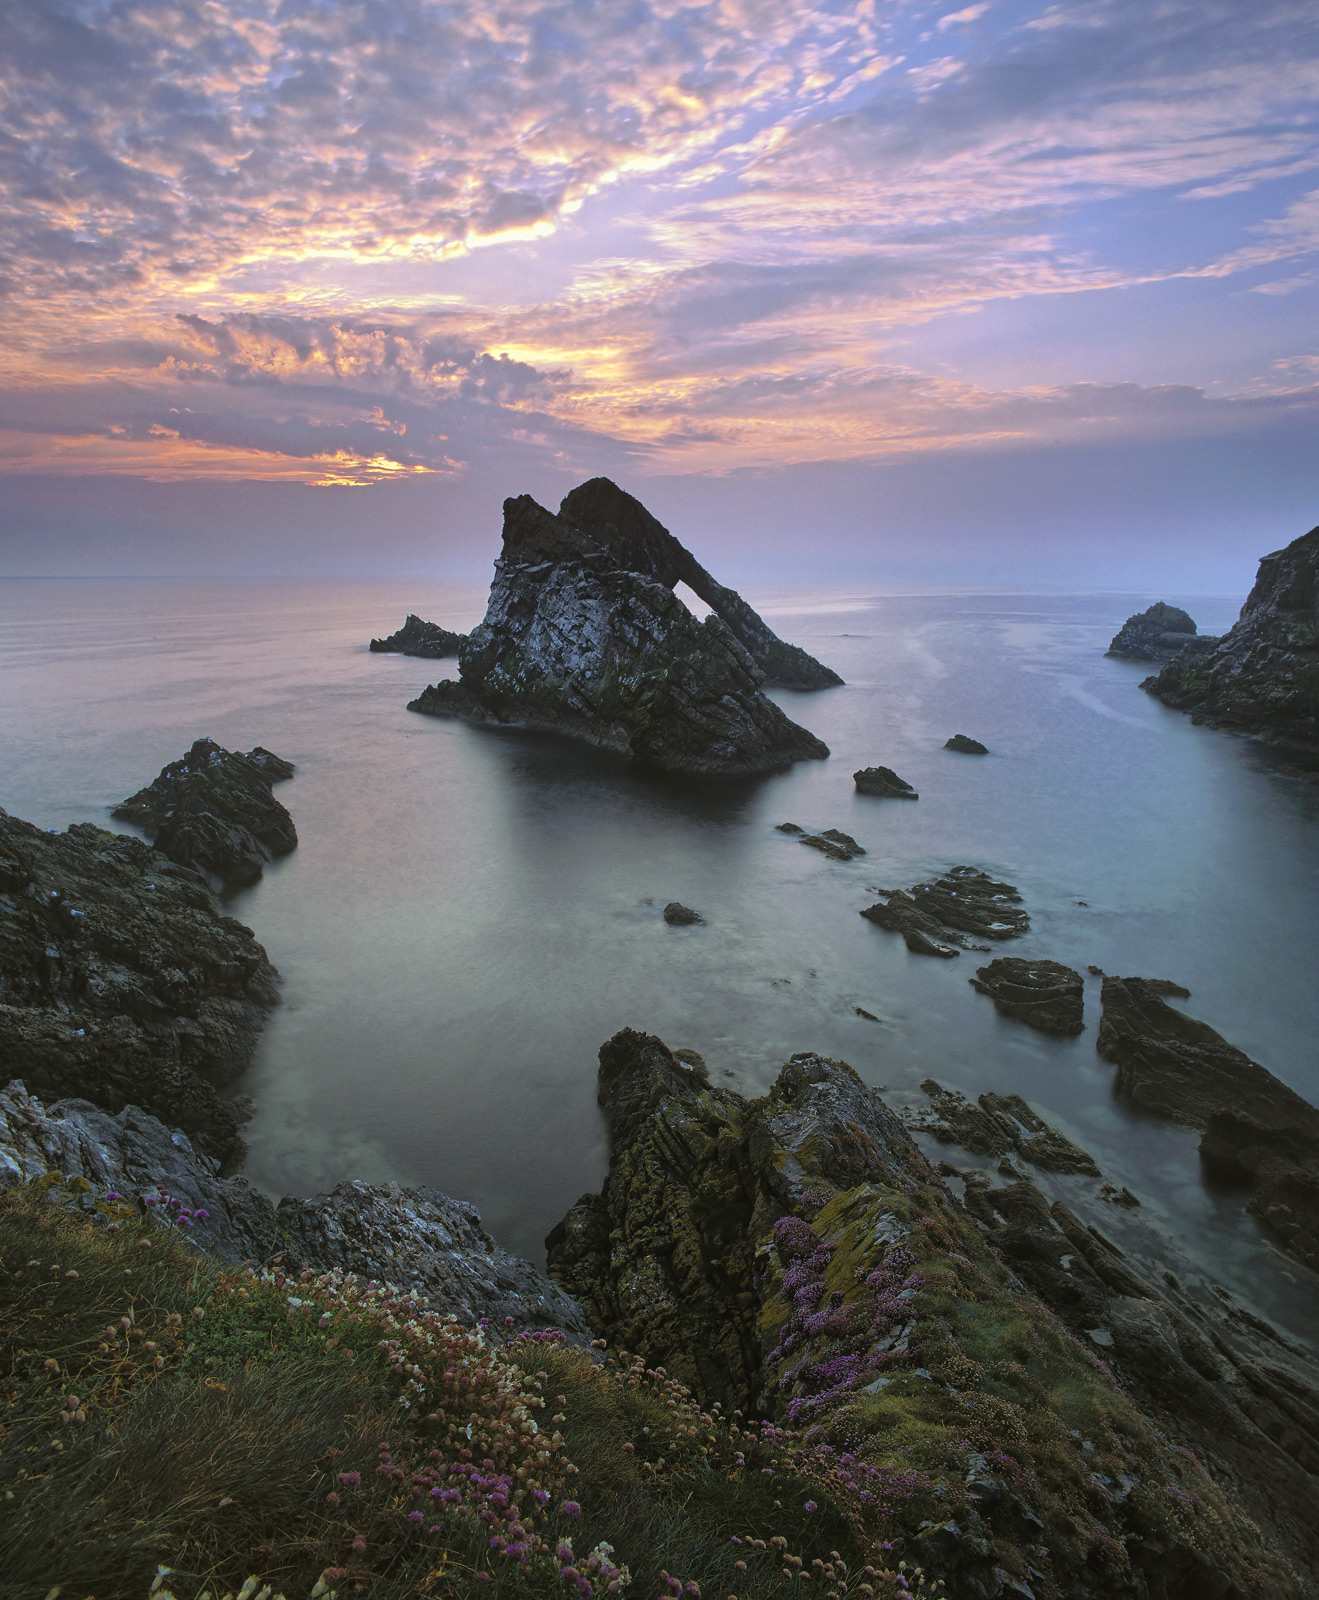 Dawn Chorus Portknockie, Portknockie, Moray, Scotland, symphony, sunrise, water colour, sky, Bowfiddle rock, cliff, flow, photo